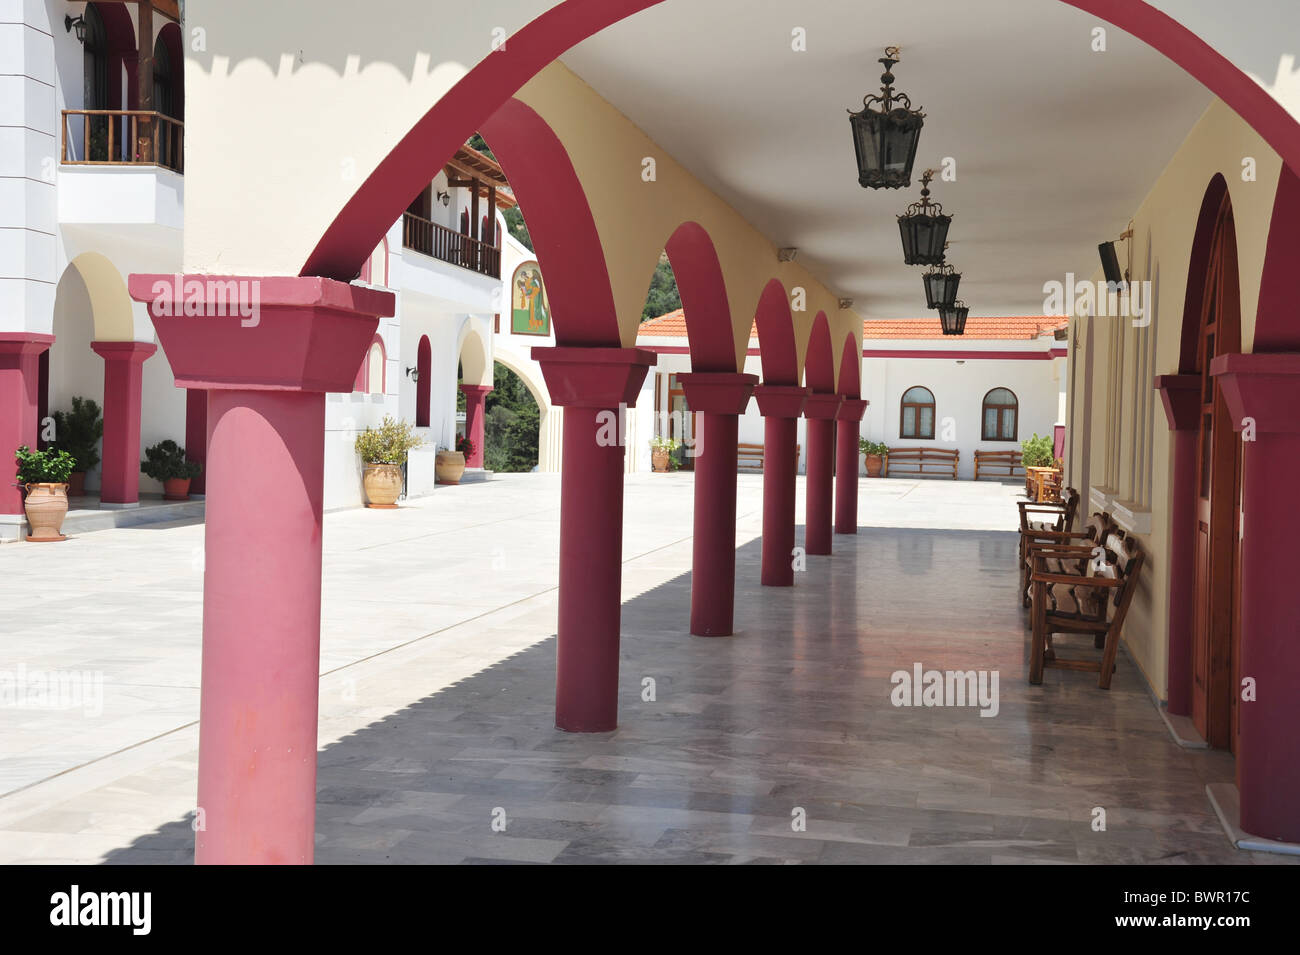 A shaded courtyard for the monks to sit and pray at the recently restored Monastry in Spilli, Crete, Greece - Stock Image